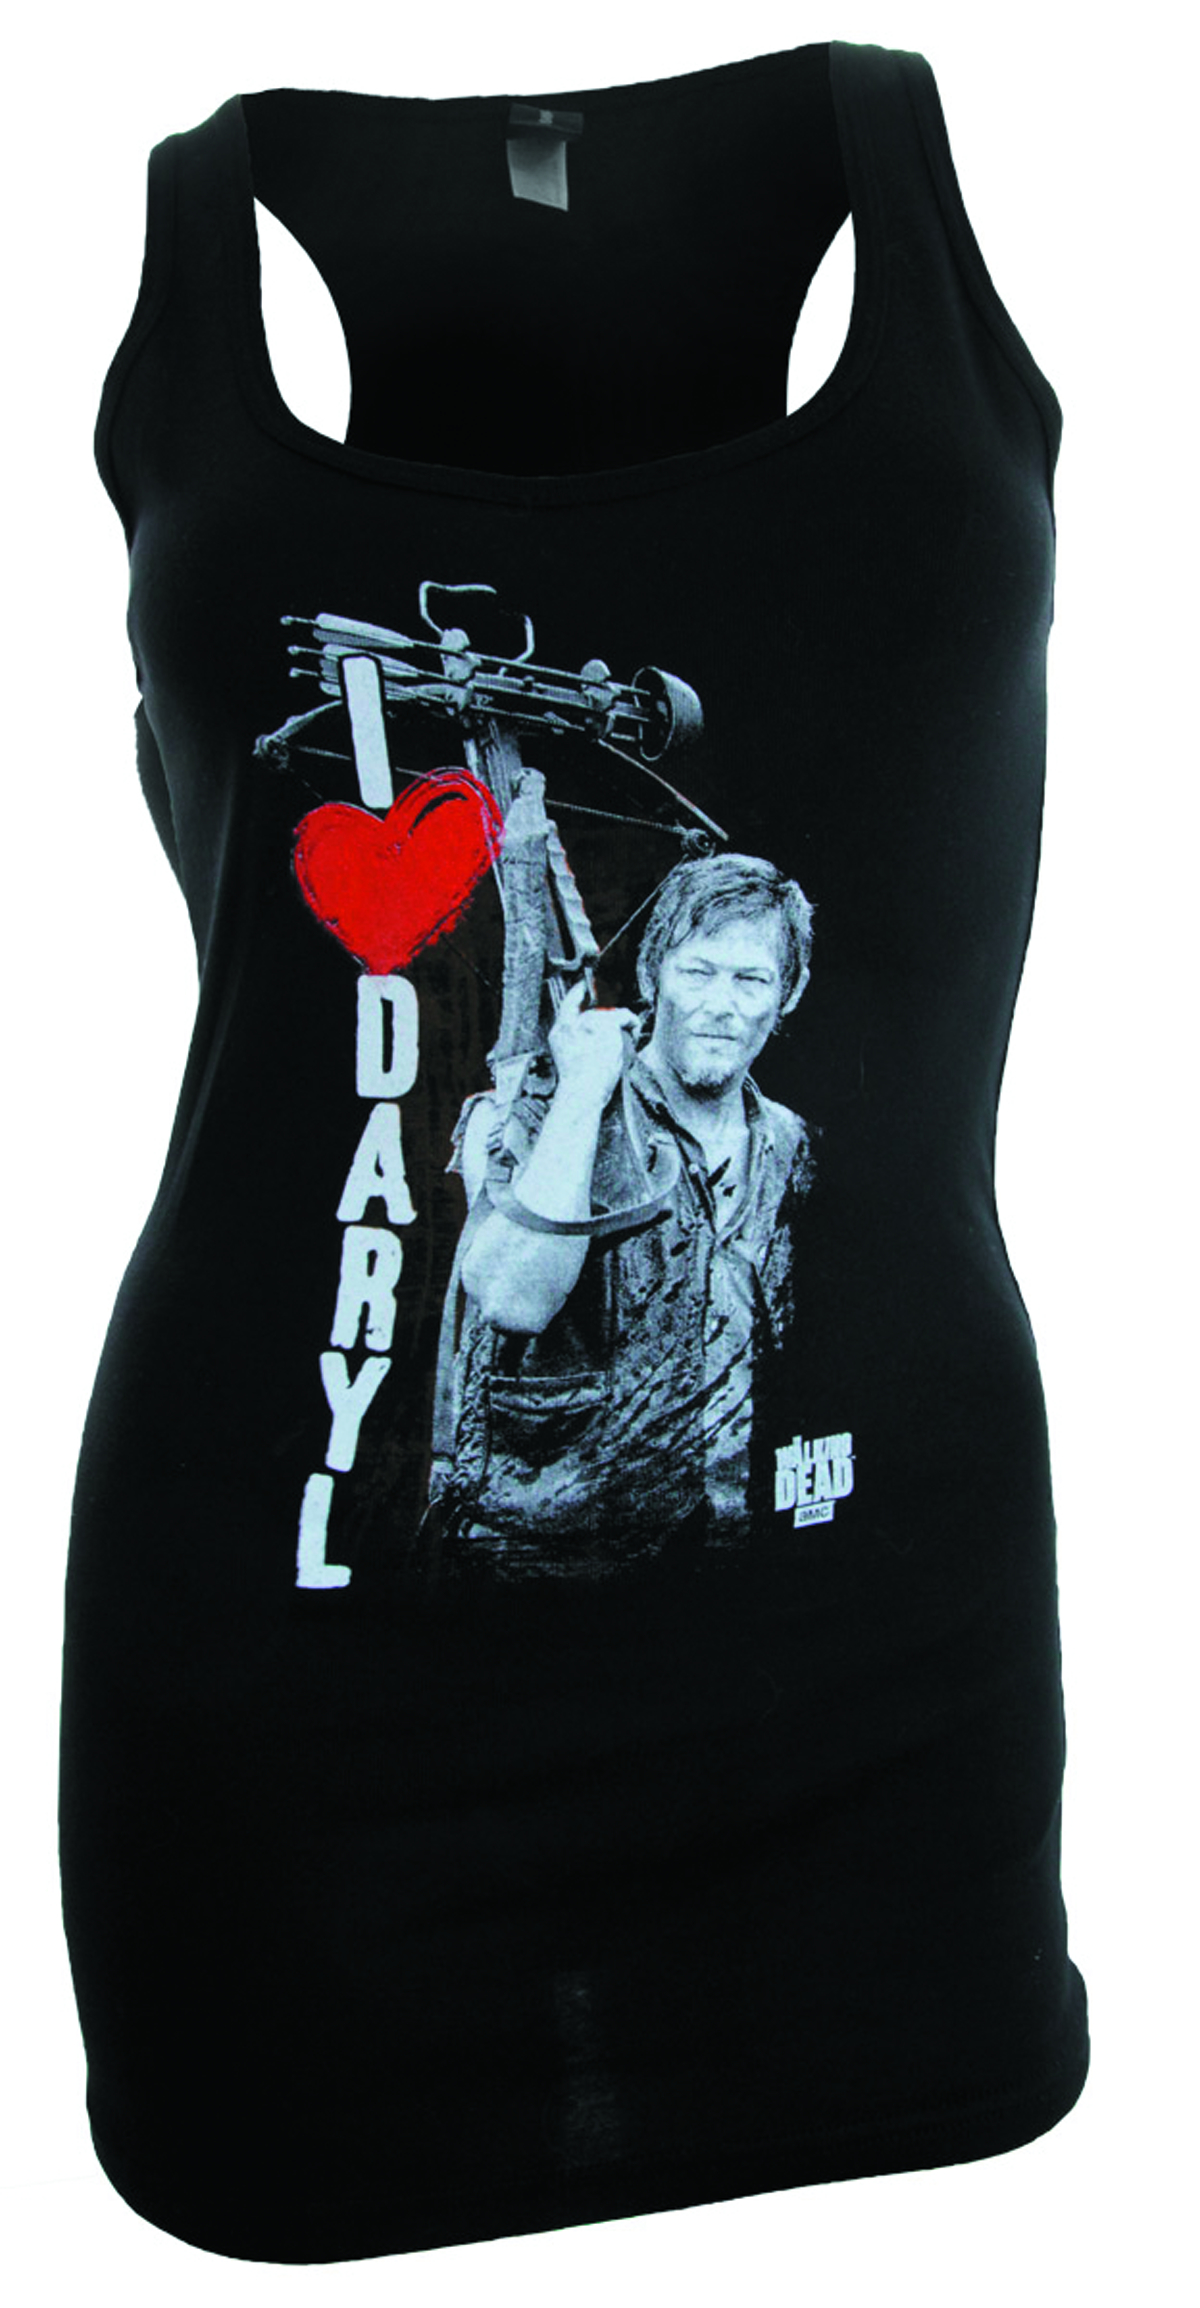 WALKING DEAD I HEART DARYL TANK DRESS T/S XL